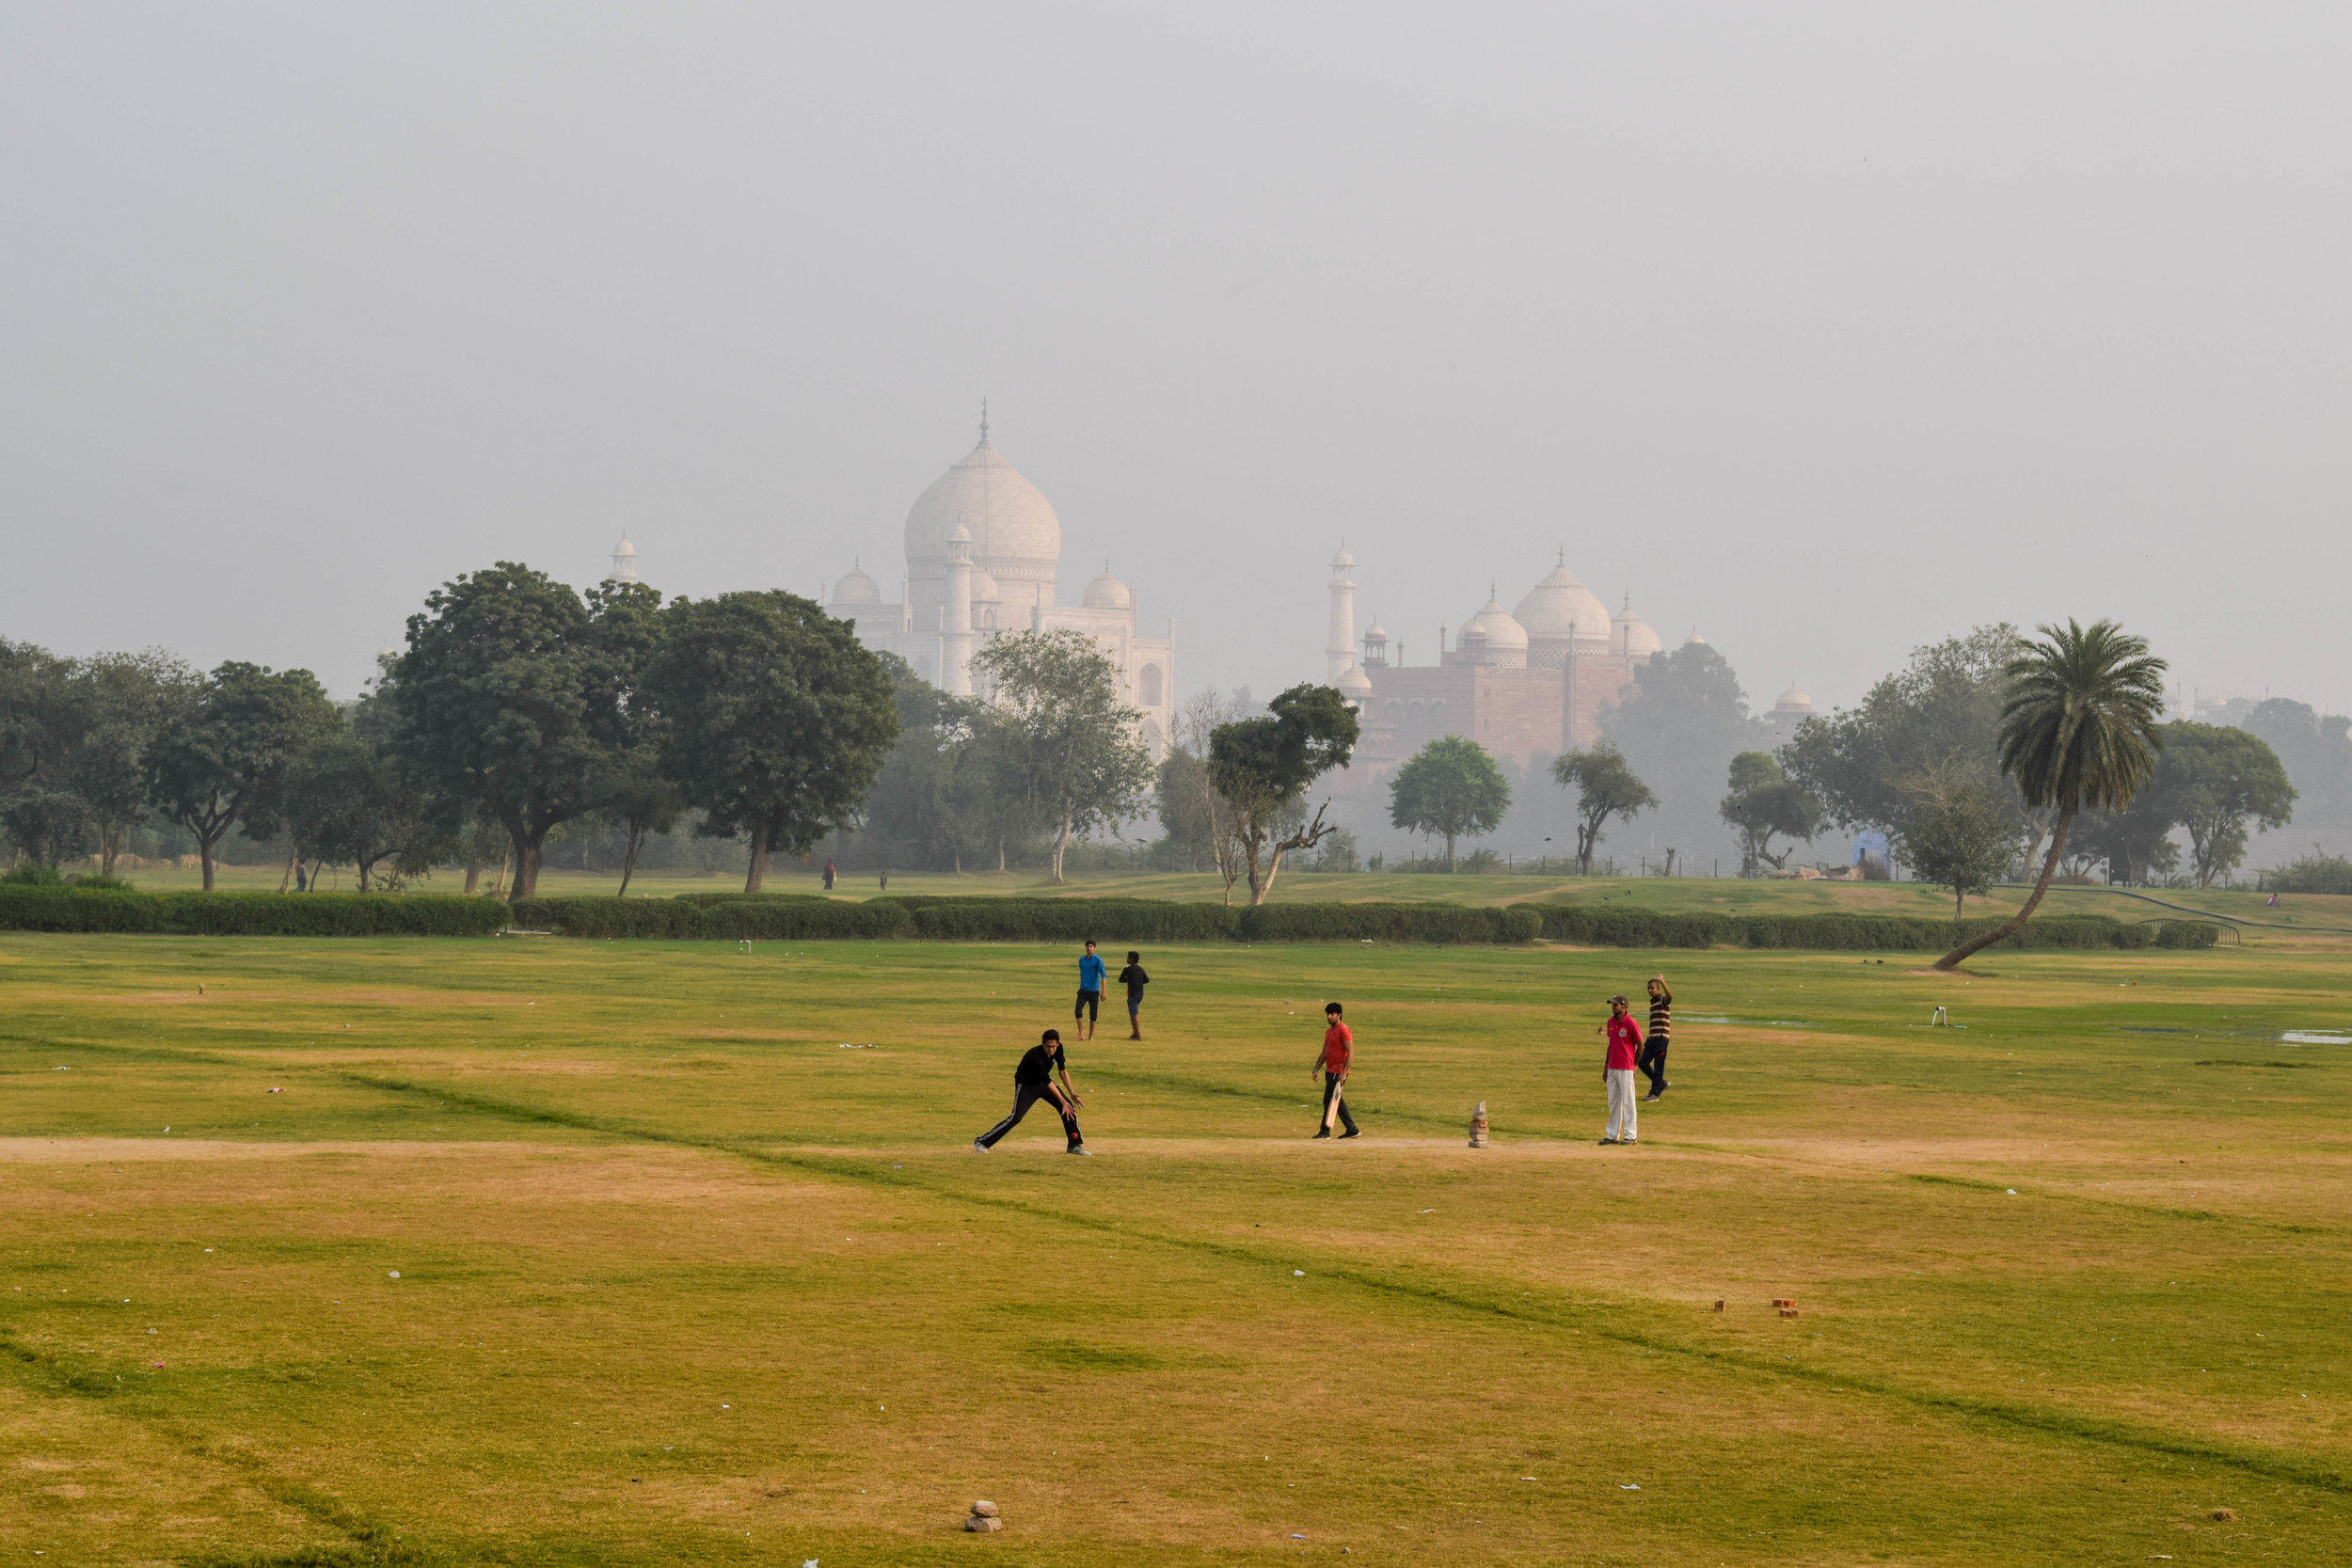 Unless you play cricket, in which case...Taj view!